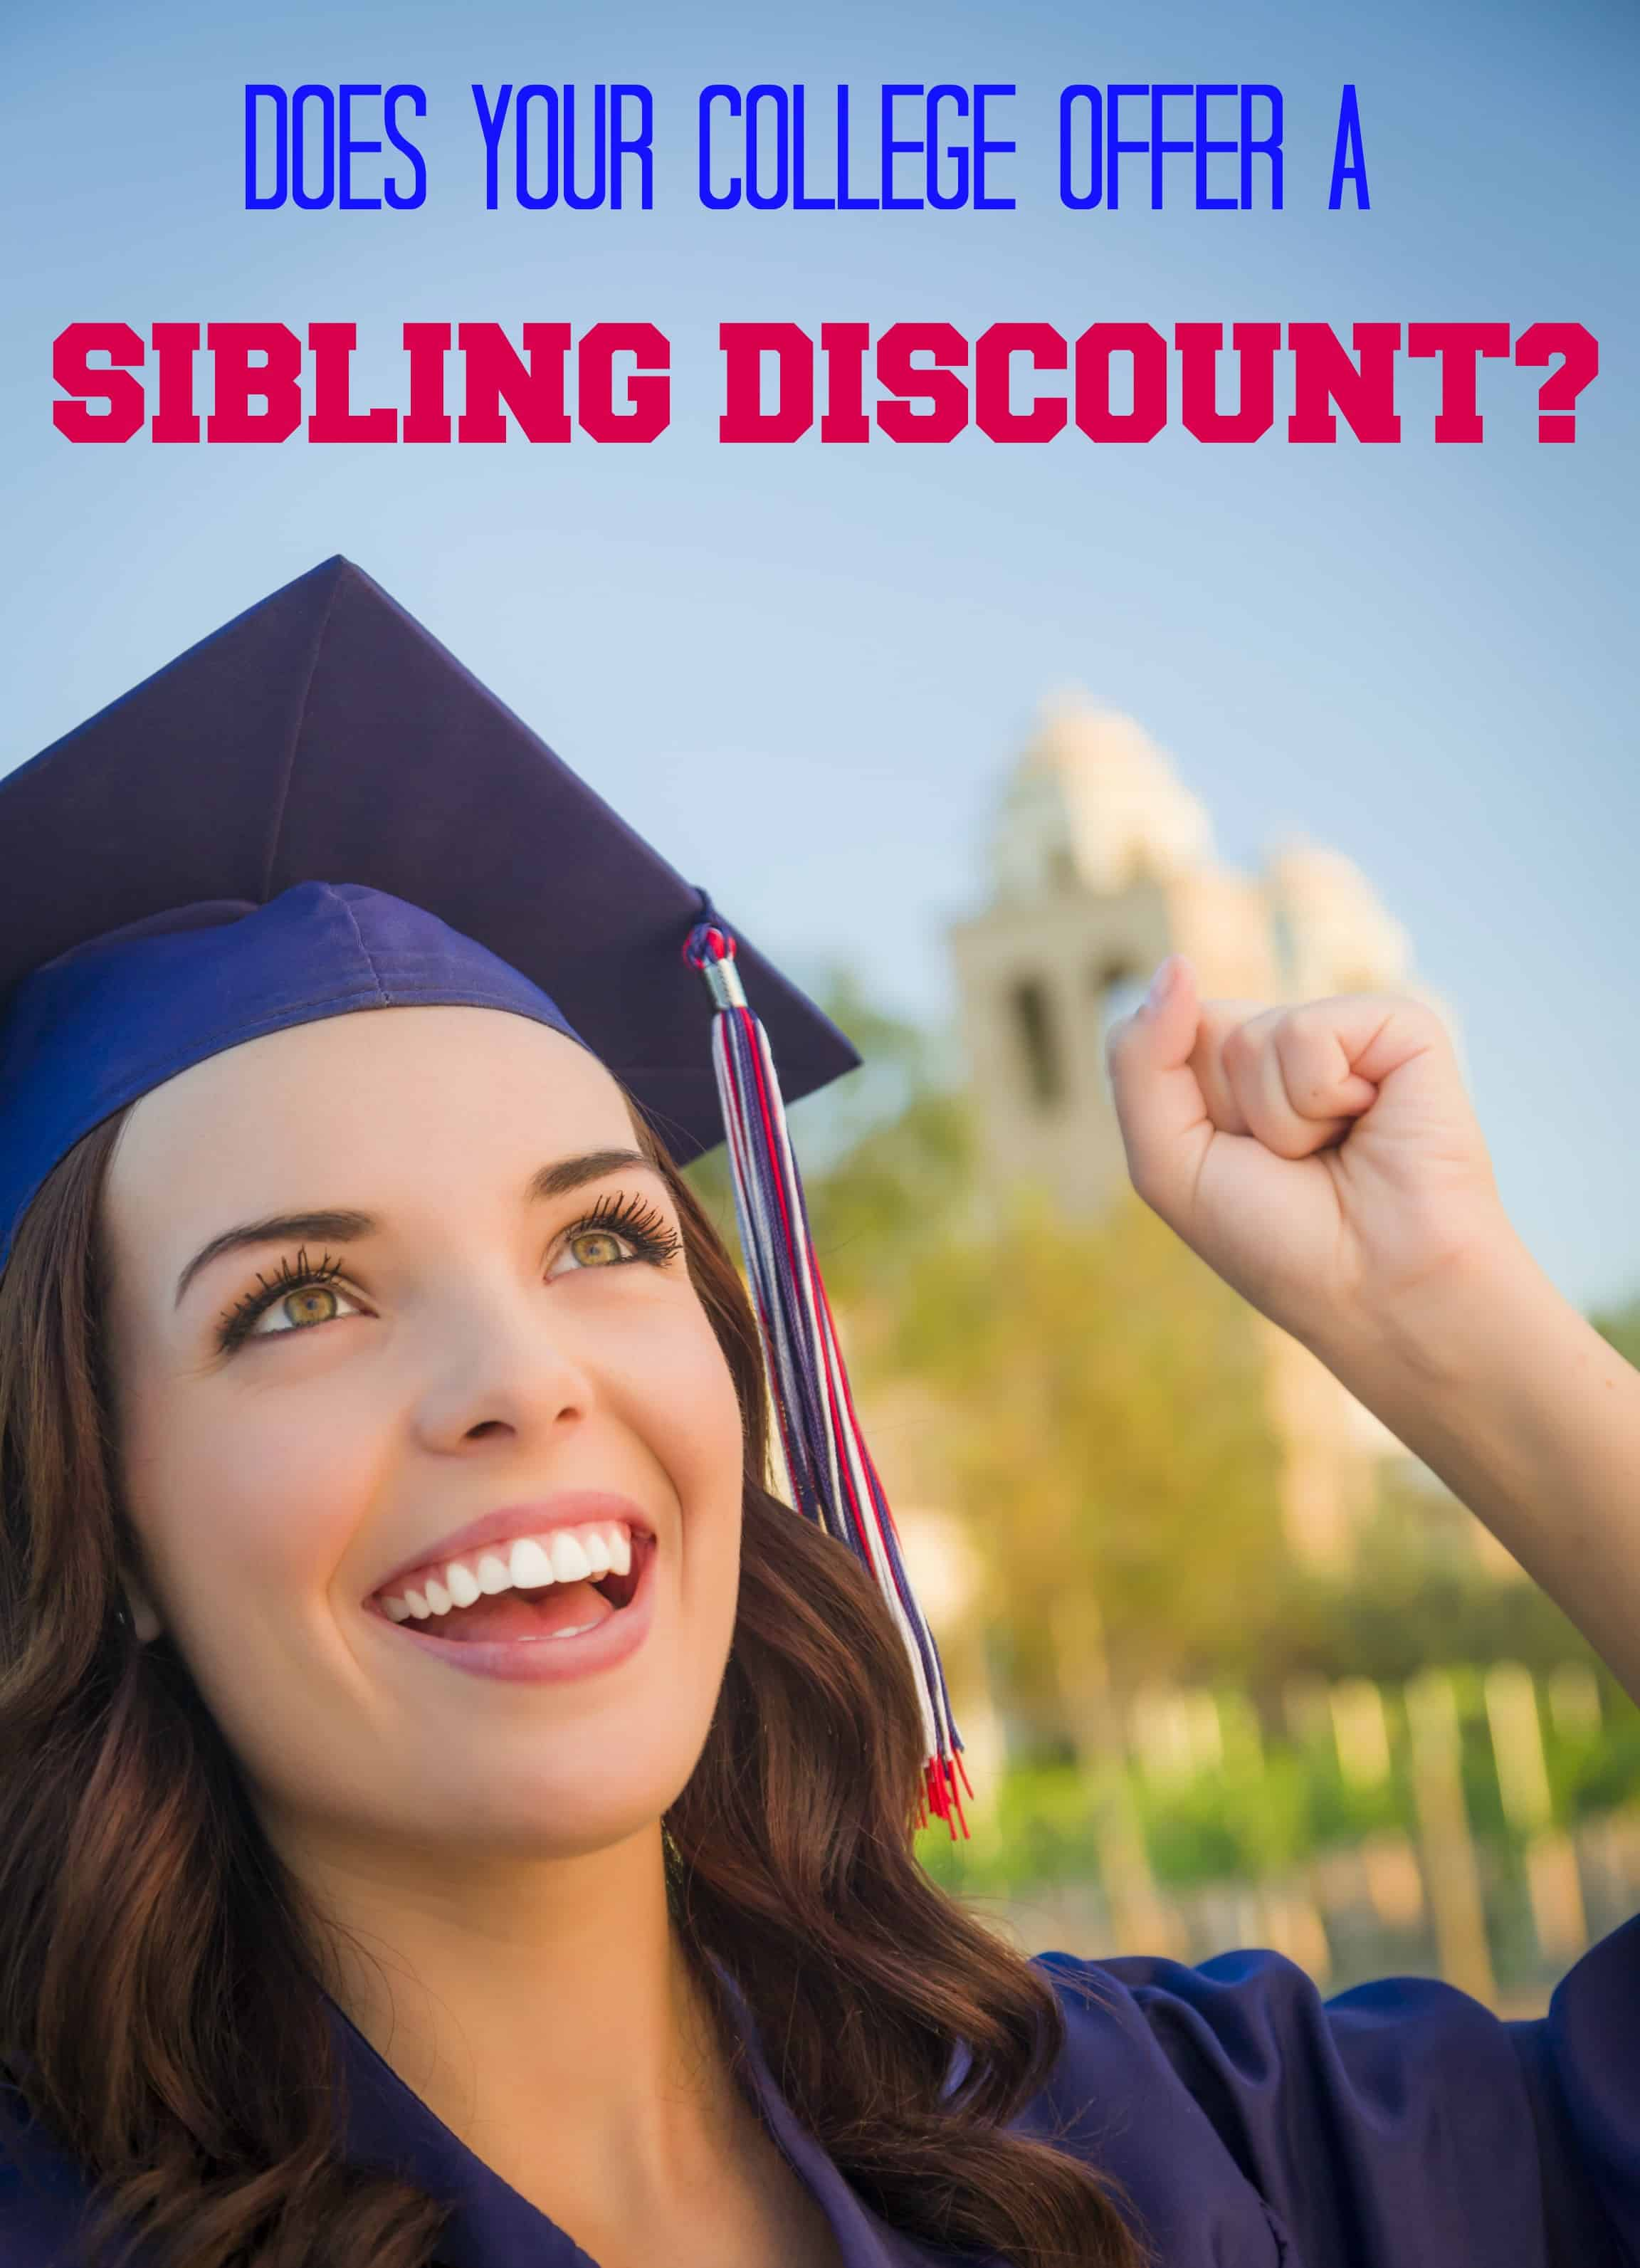 Does Your College Offer a Sibling Discount?